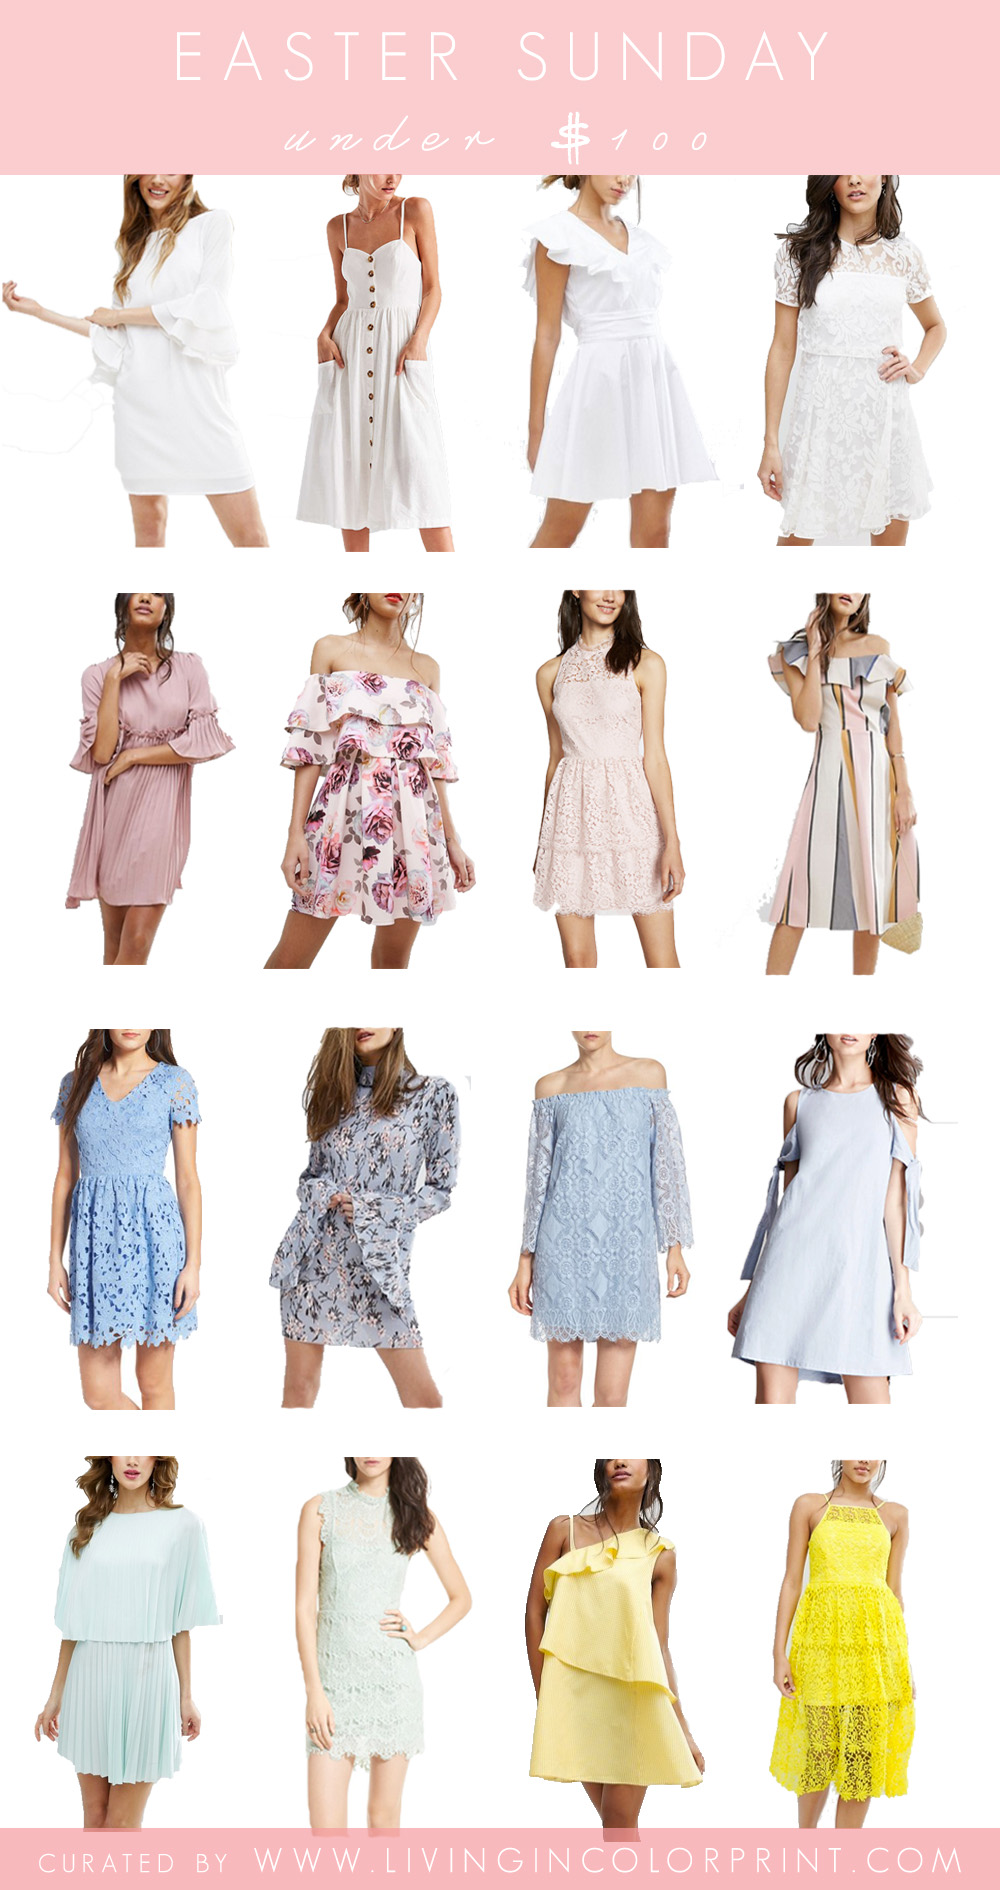 Easter Sunday Dresses under $100